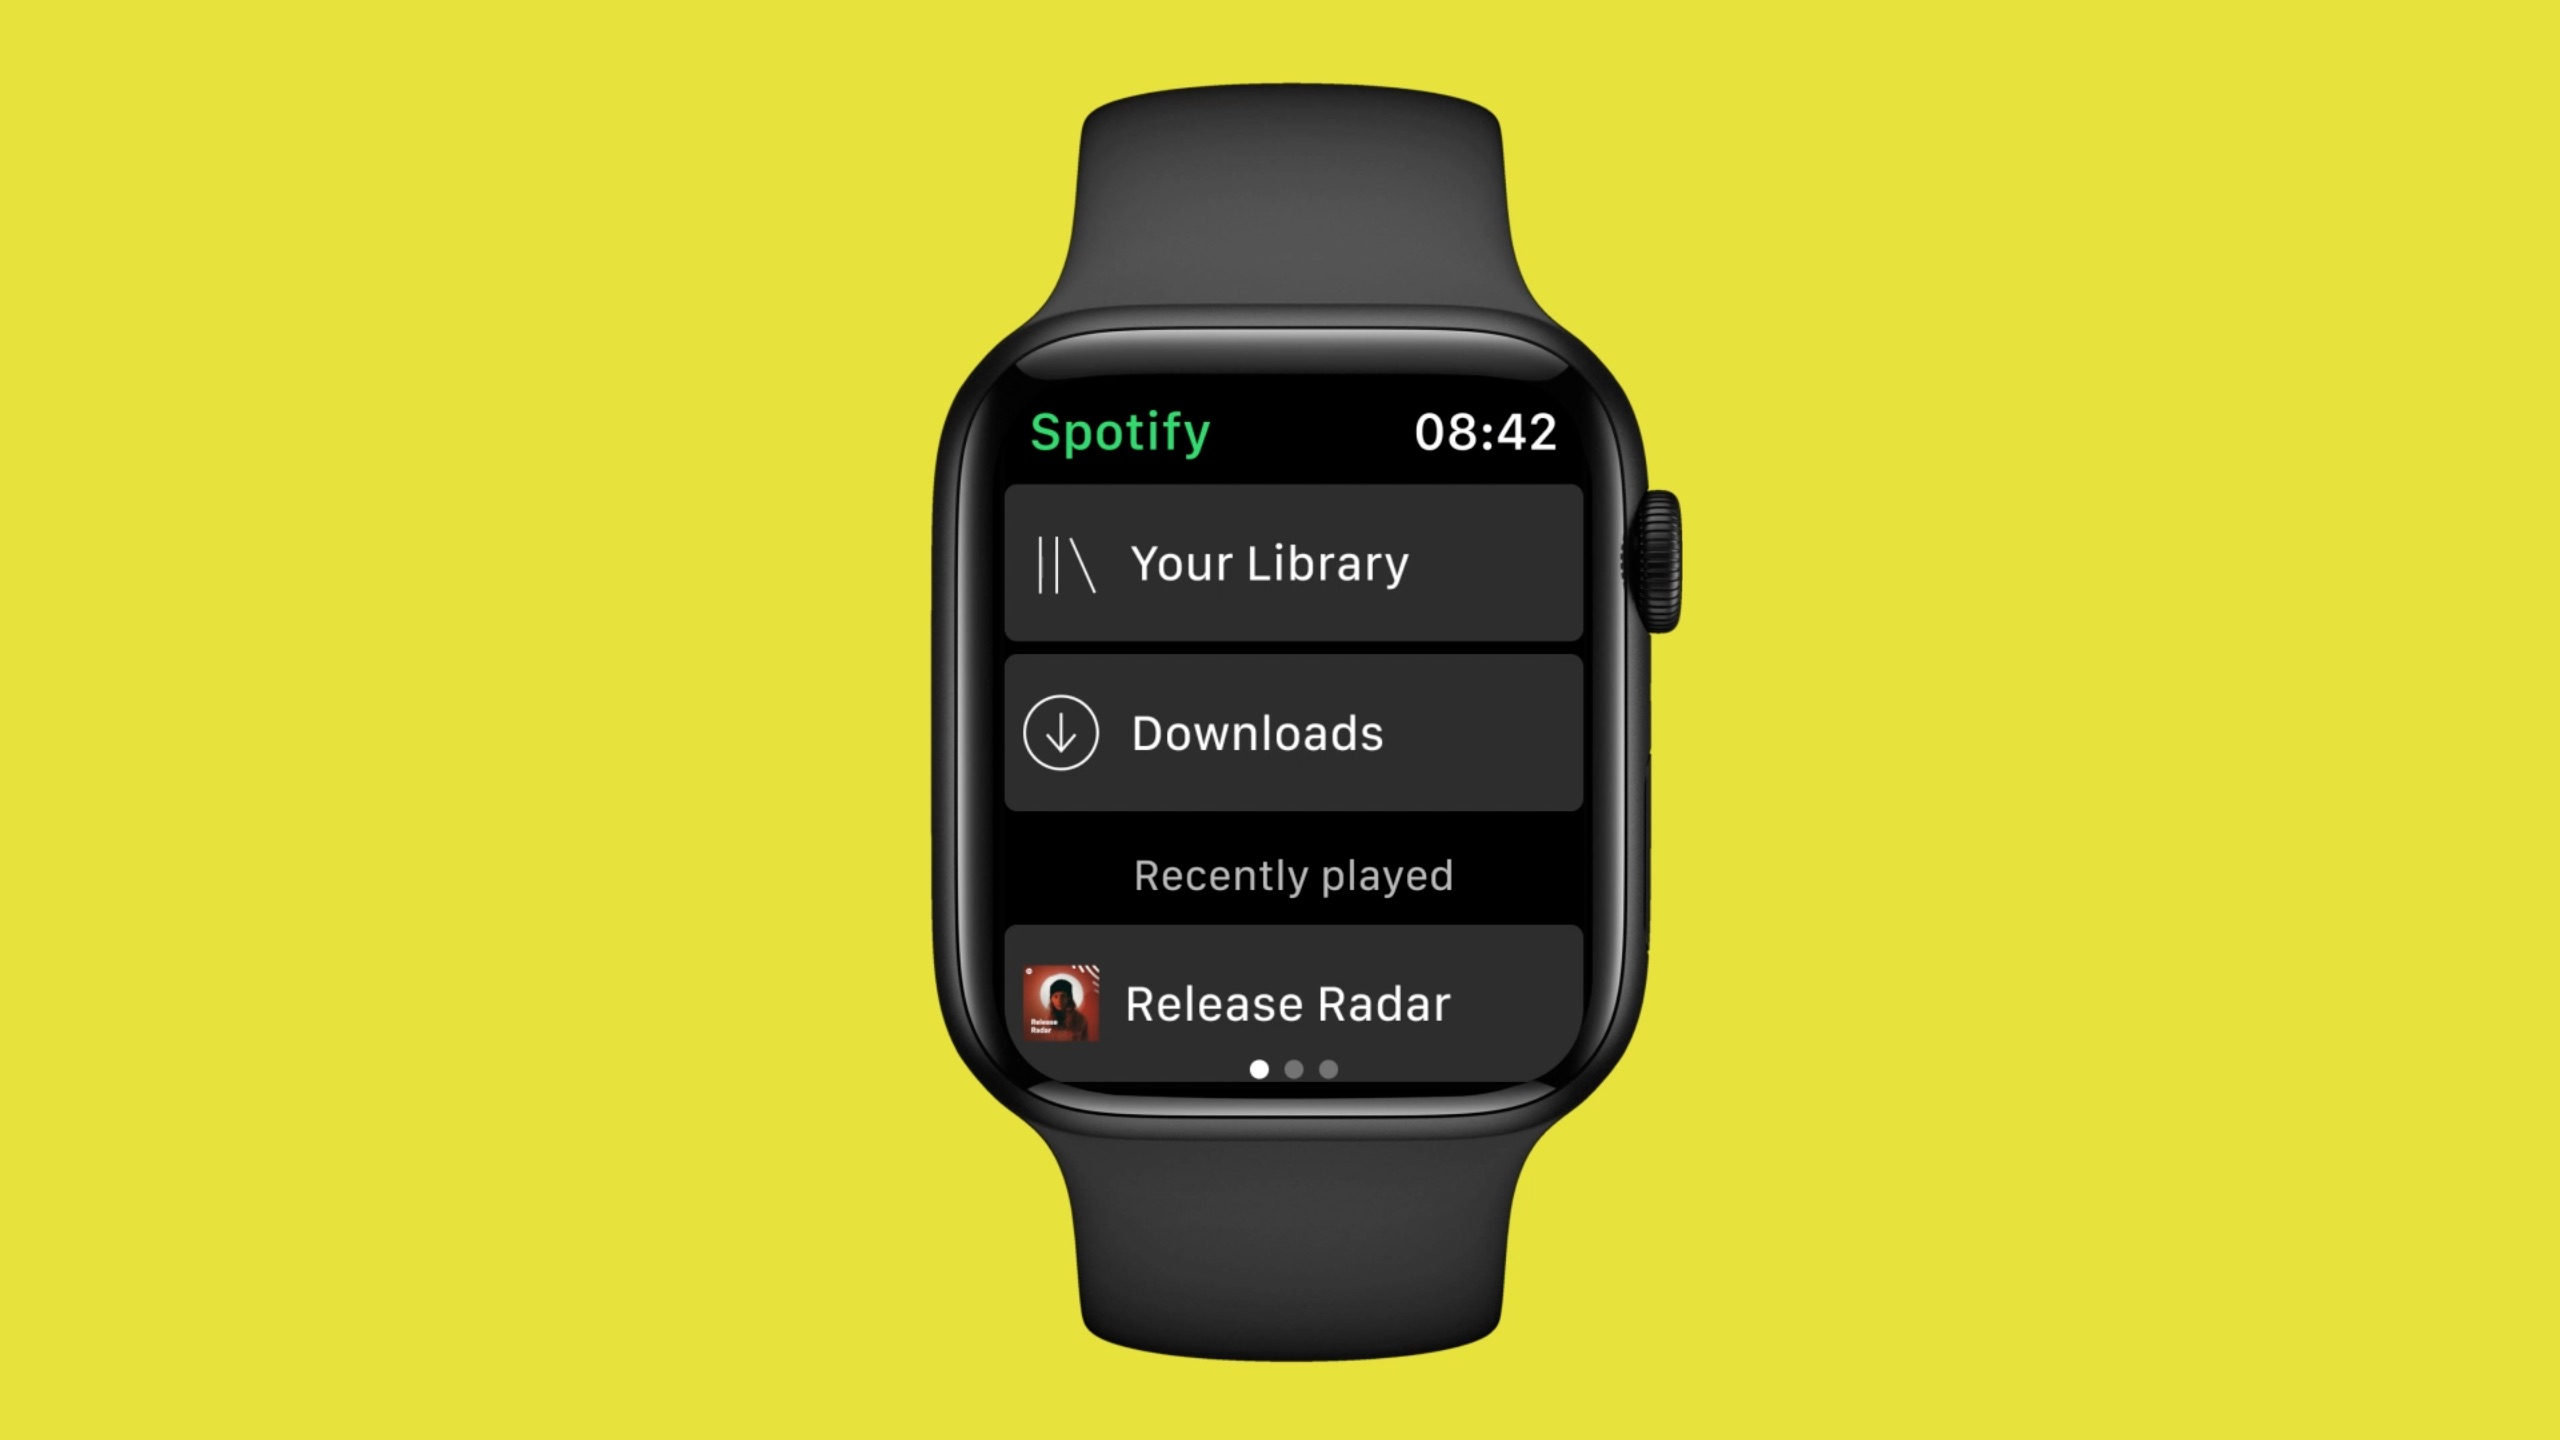 An image showing an Apple Watch set against a yellow background. The watch is shown running the Spotify app in offline mode with the Downloads section visible in the interface.